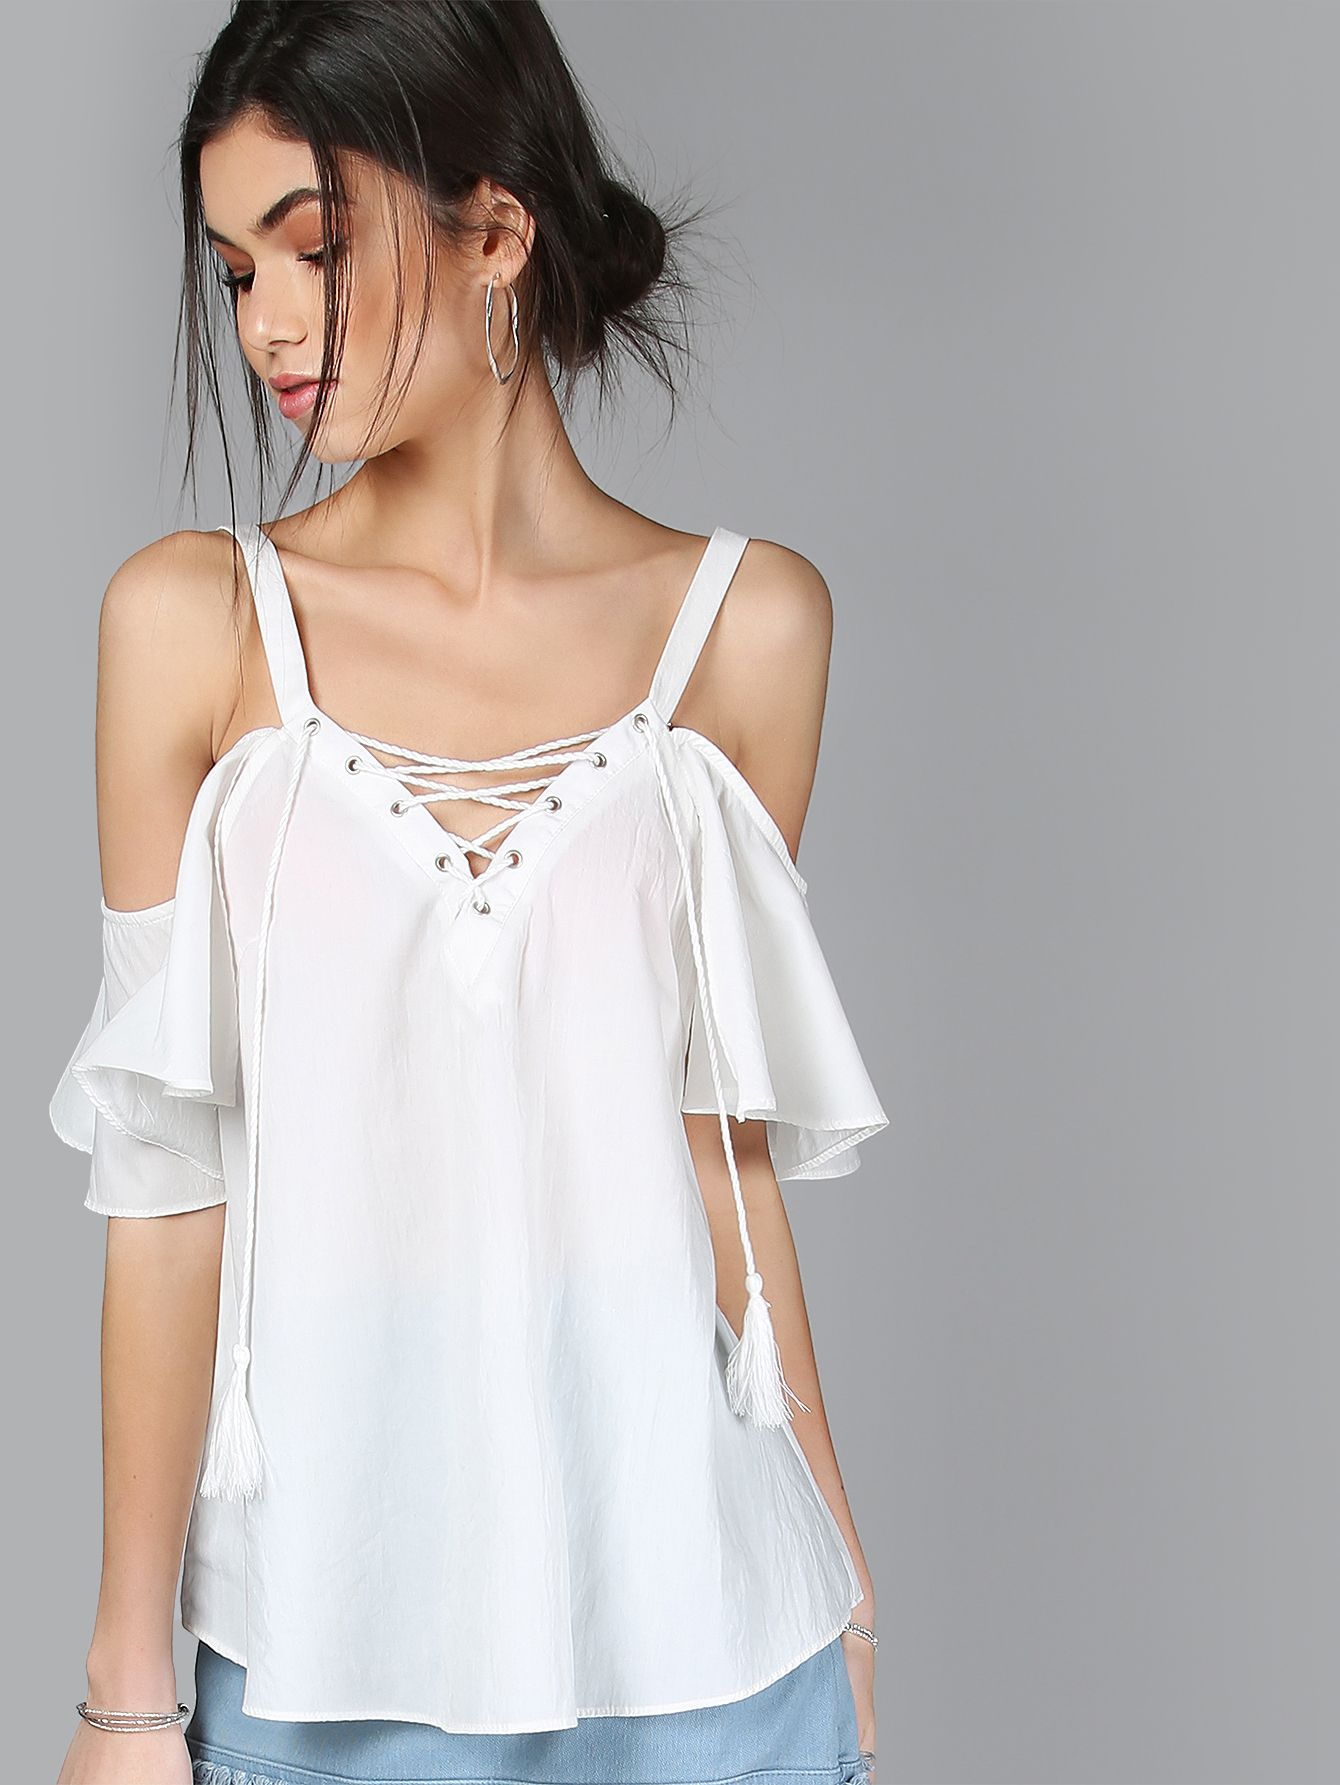 8e5afd12386730 Online shopping for Lace Up Tassel Cold Shoulder Flow Top WHITE from a  great selection of women's fashion clothing & more at MakeMeChic.COM.